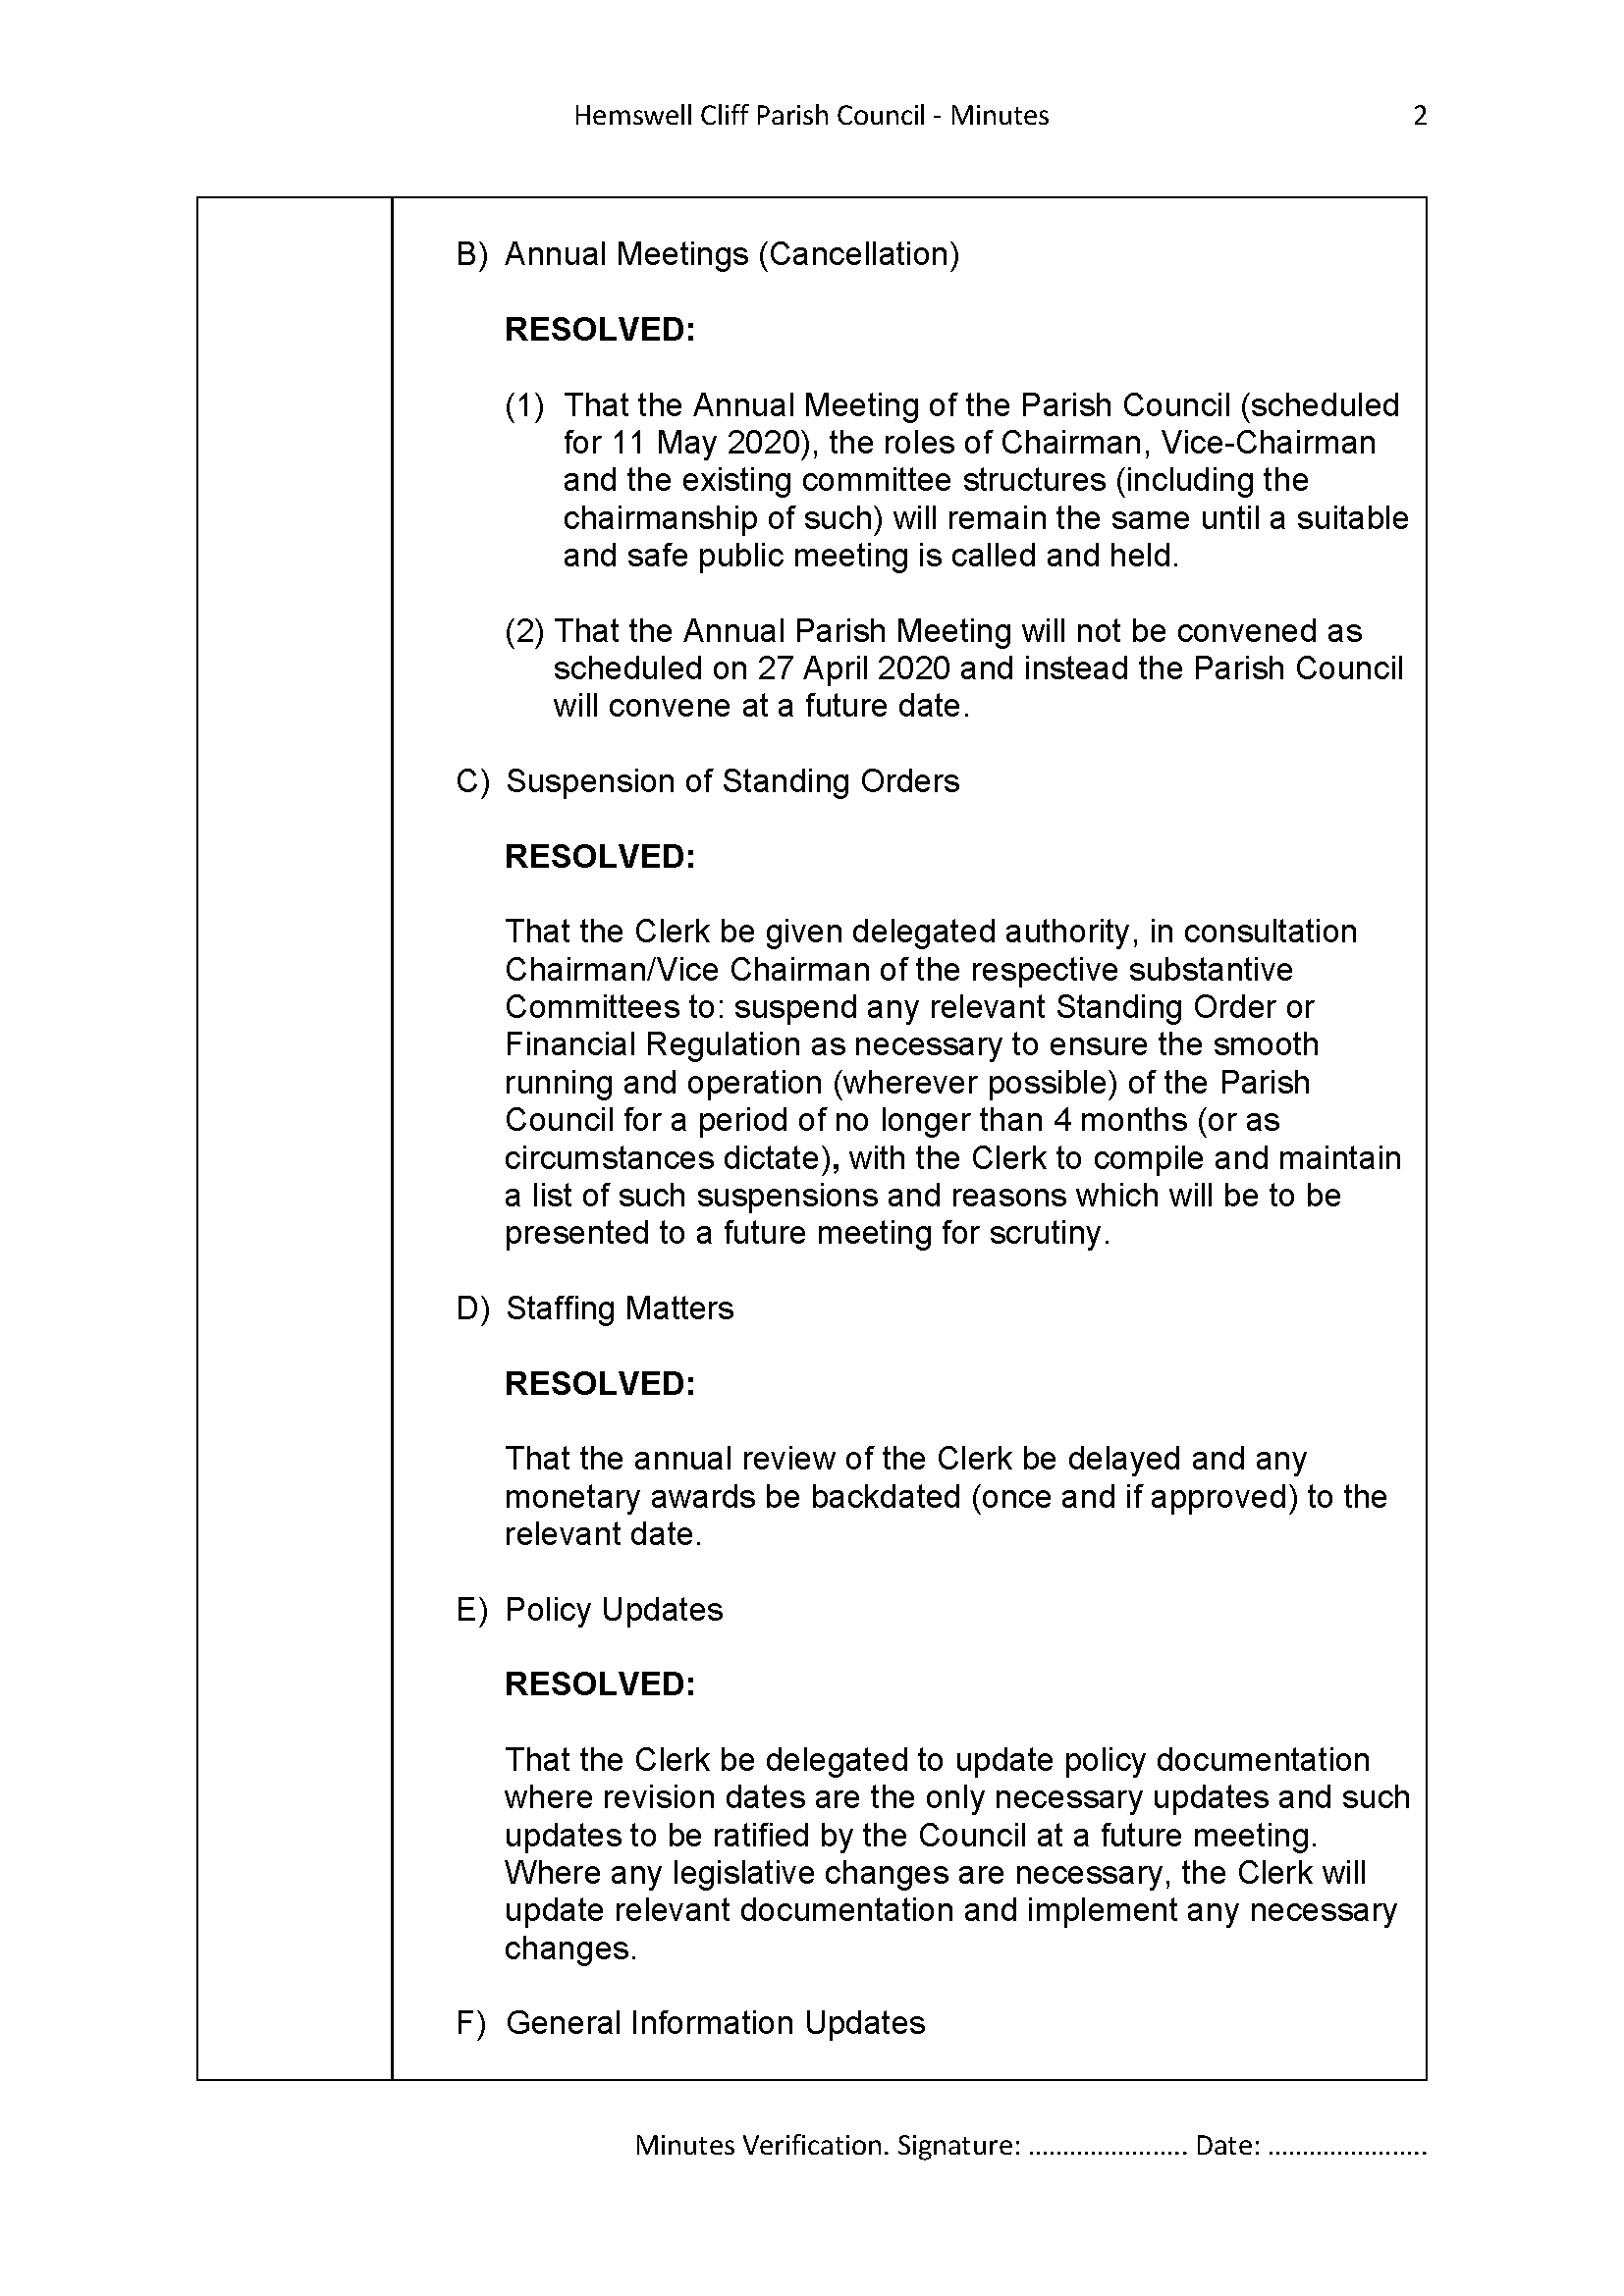 HCPC_Notes_06.04.20_Page_2.png